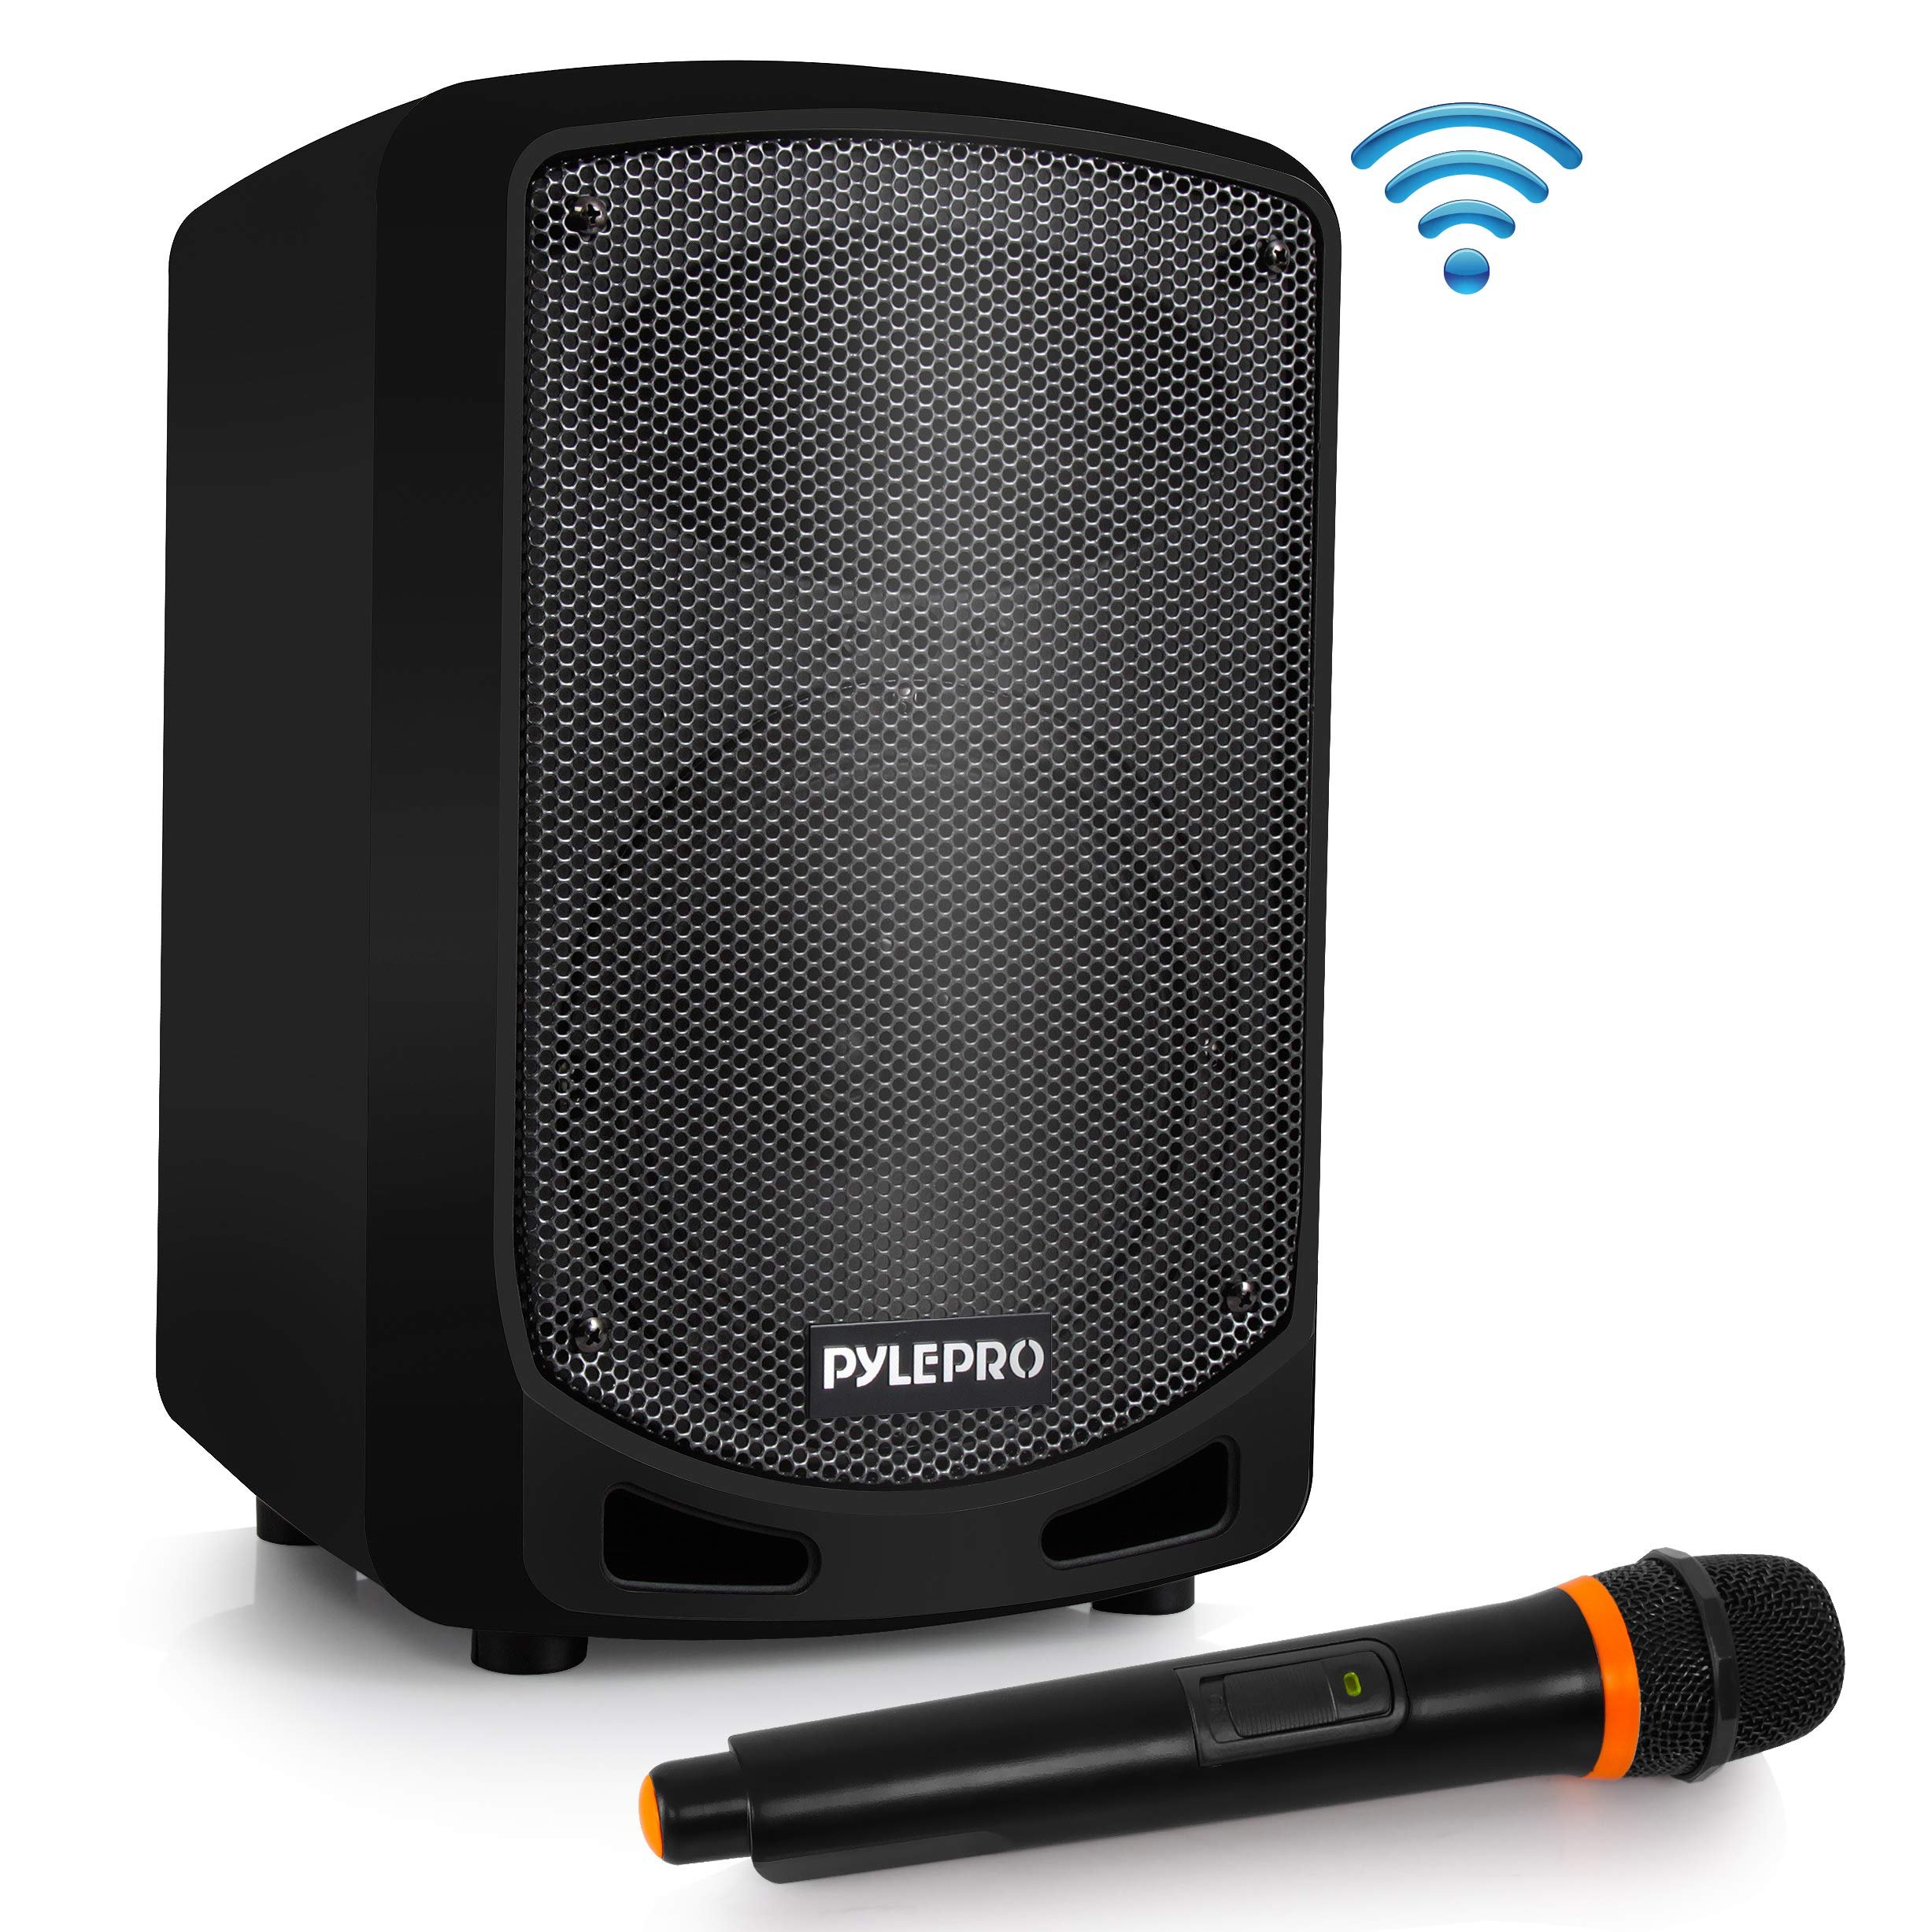 Portable Bluetooth PA Speaker System - Indoor Outdoor Karaoke Sound System w/Wireless Mic, Audio Recording, Rechargeable Battery, USB/SD Reader, Stand Mount, for Party, Crowd Control - Pyle